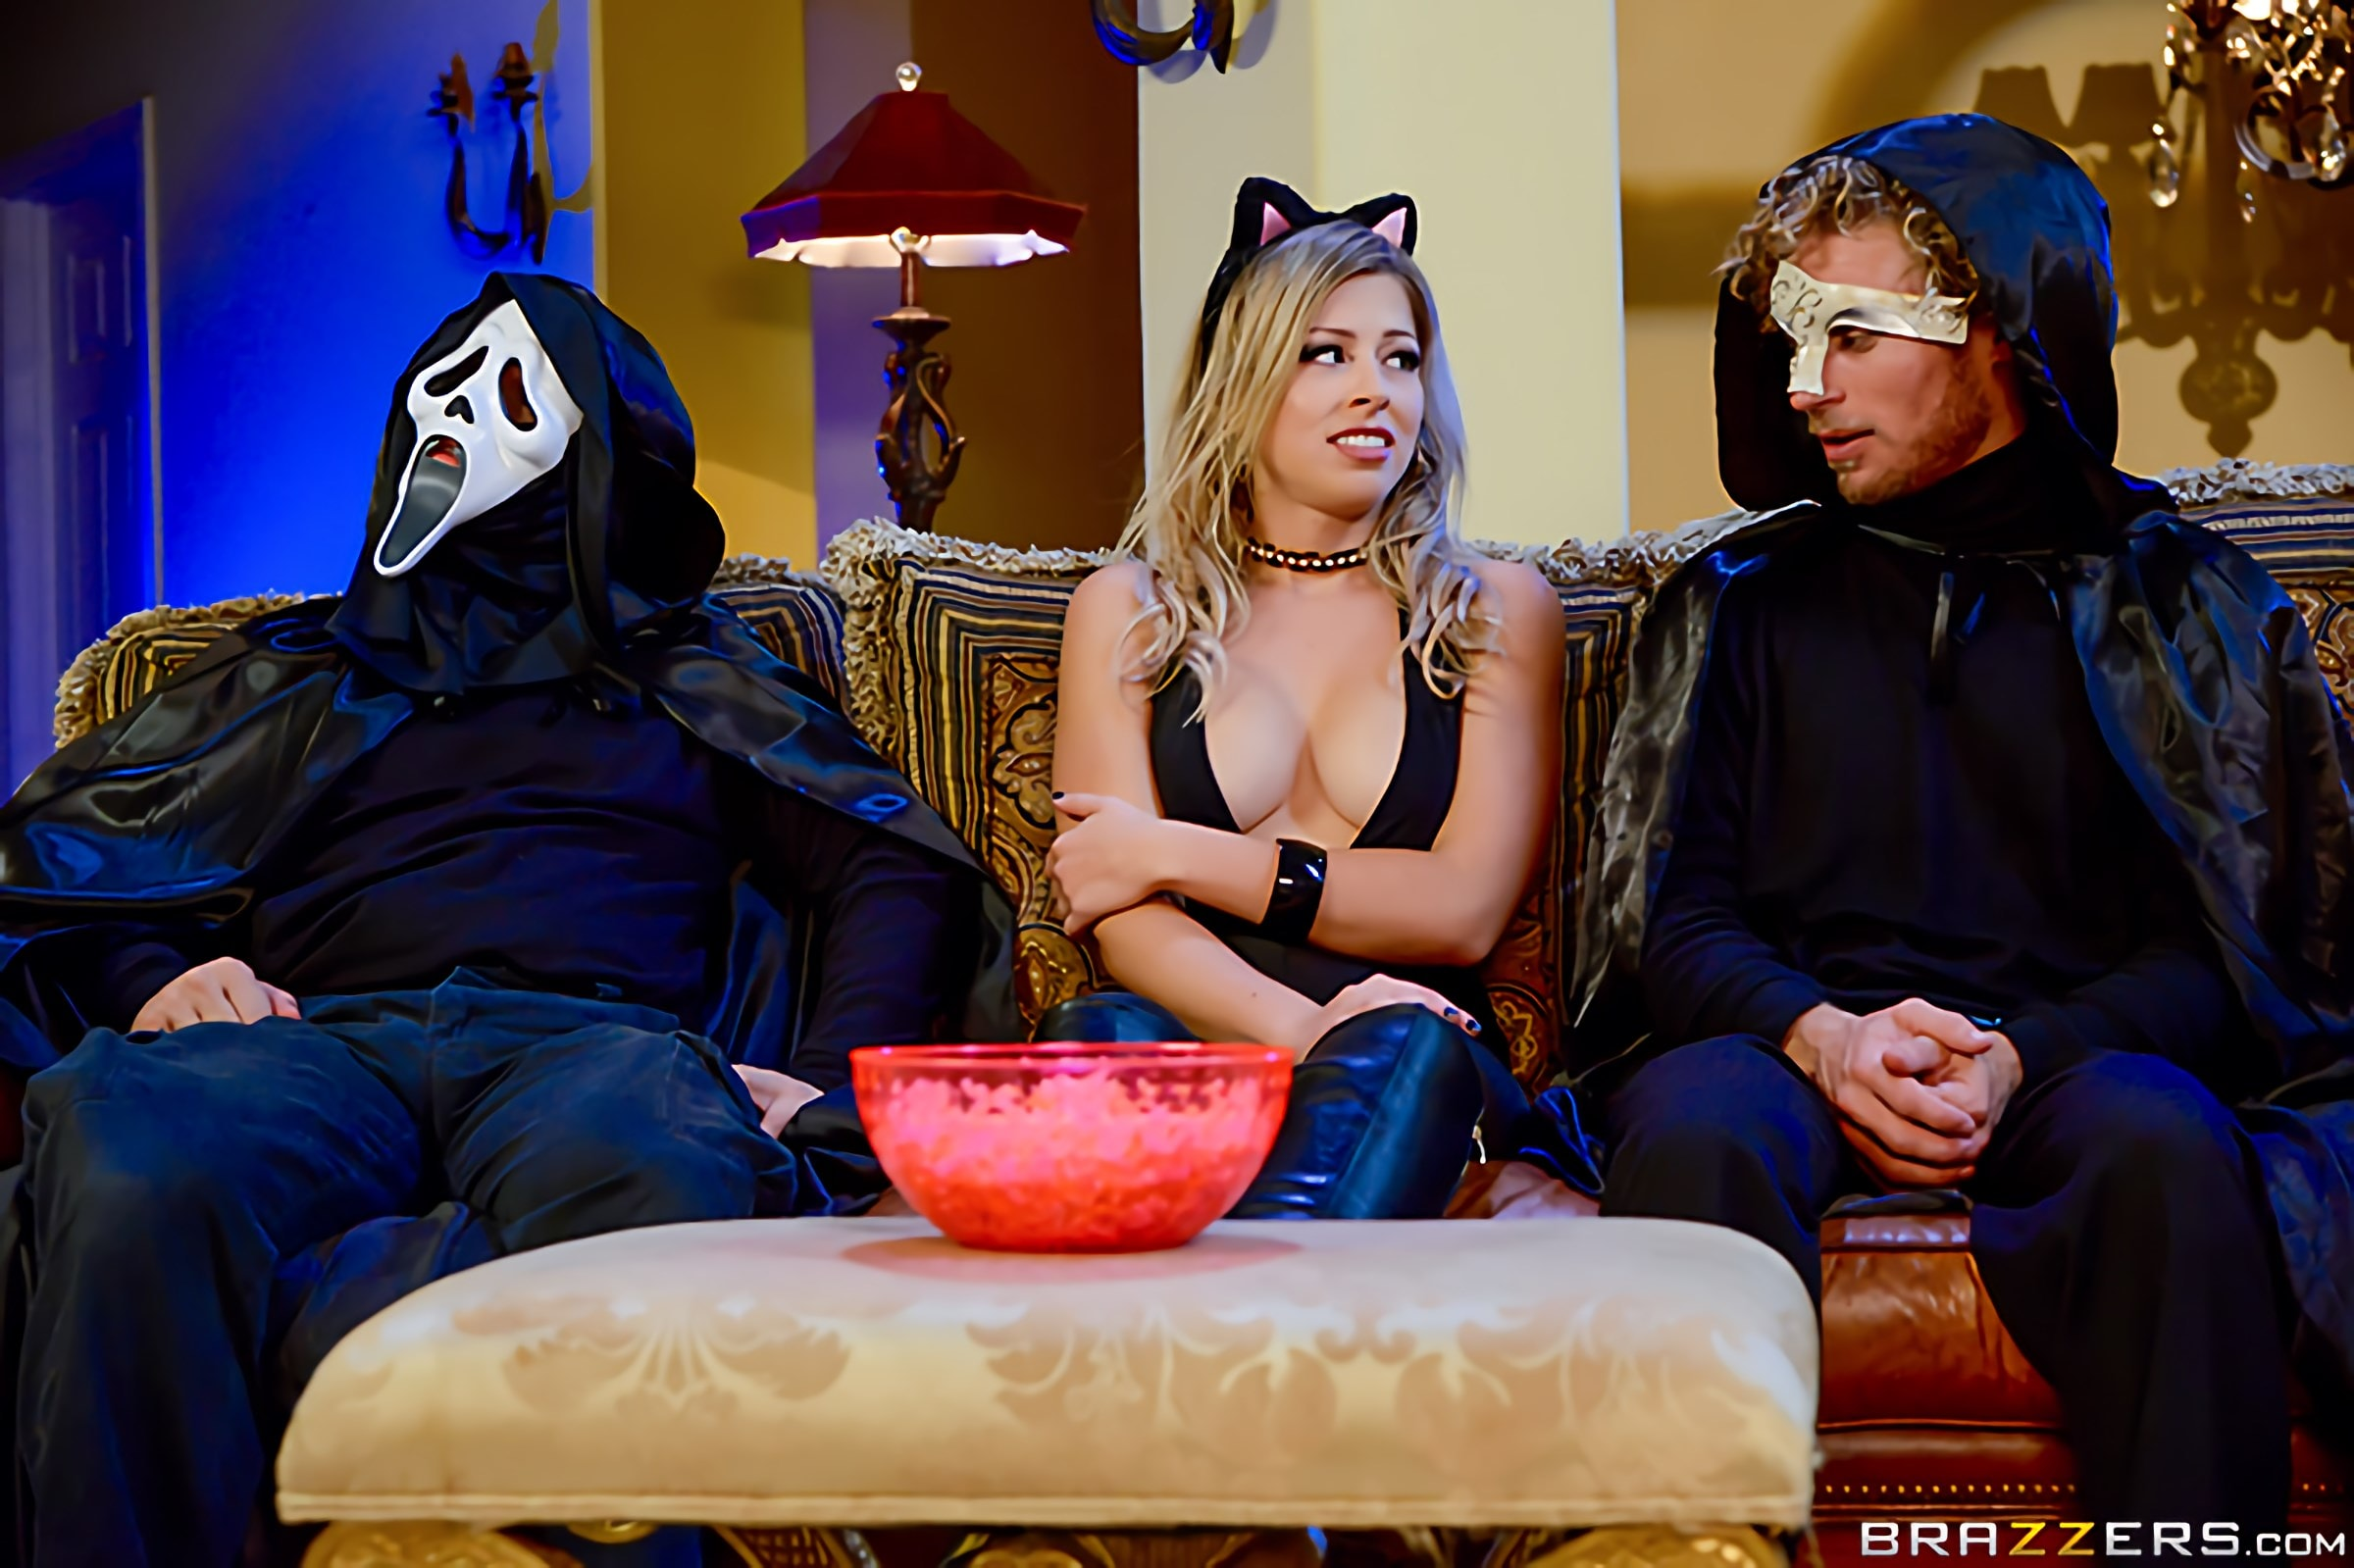 Brazzers 'Trick And Treat' starring Zoey Monroe (Photo 1)